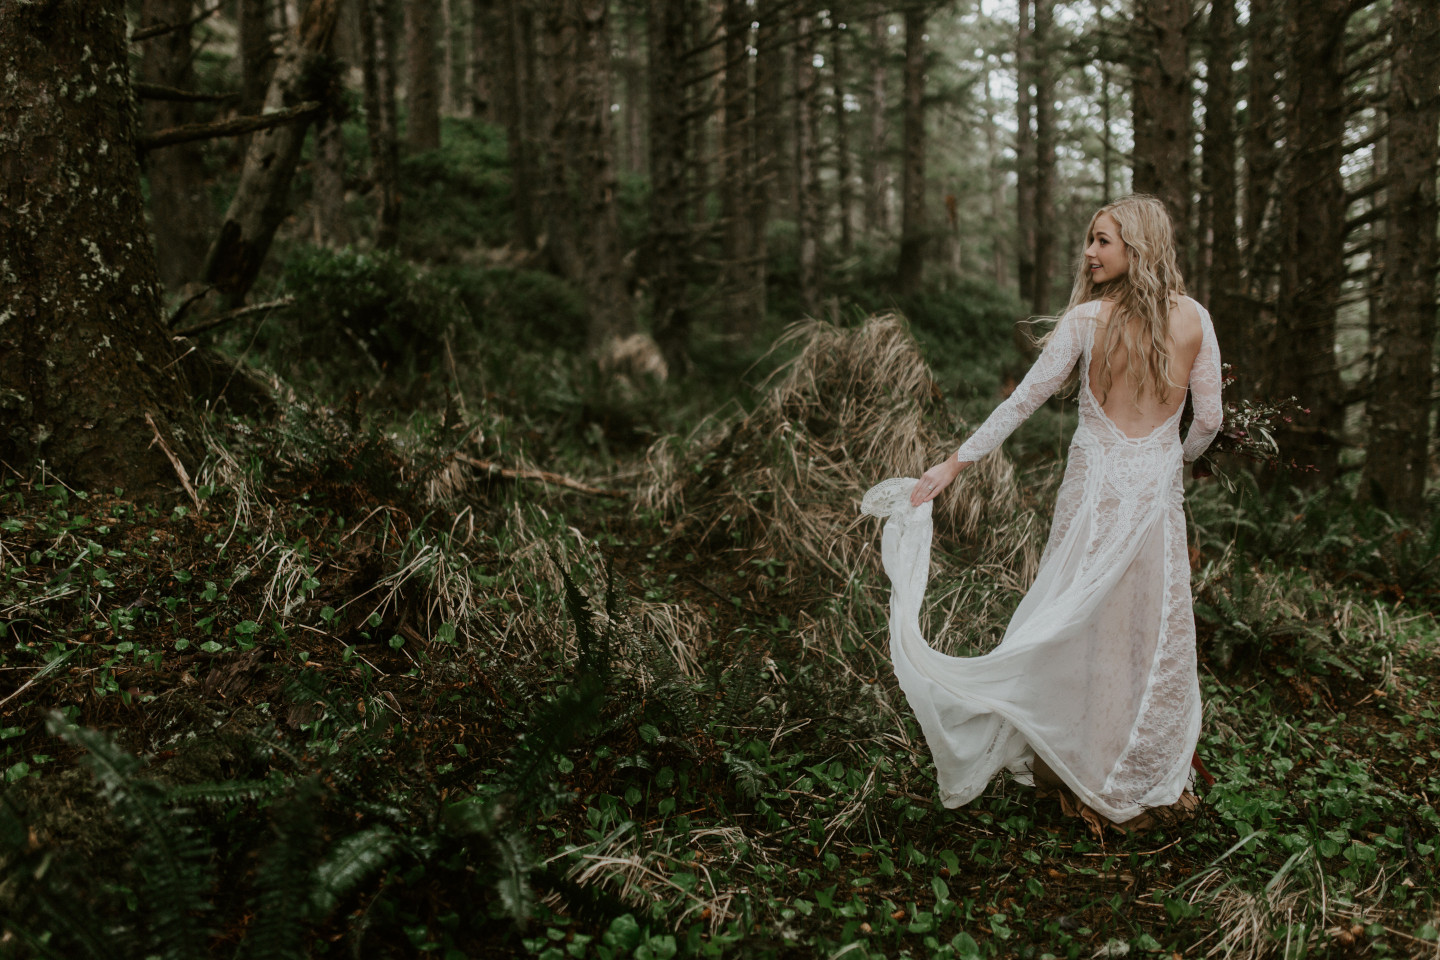 Hannah moves her dress as she walks through the woods in Cannon Beach, Oregon during her Oregon coast elopement. Wedding photography in Portland Oregon by Sienna Plus Josh.